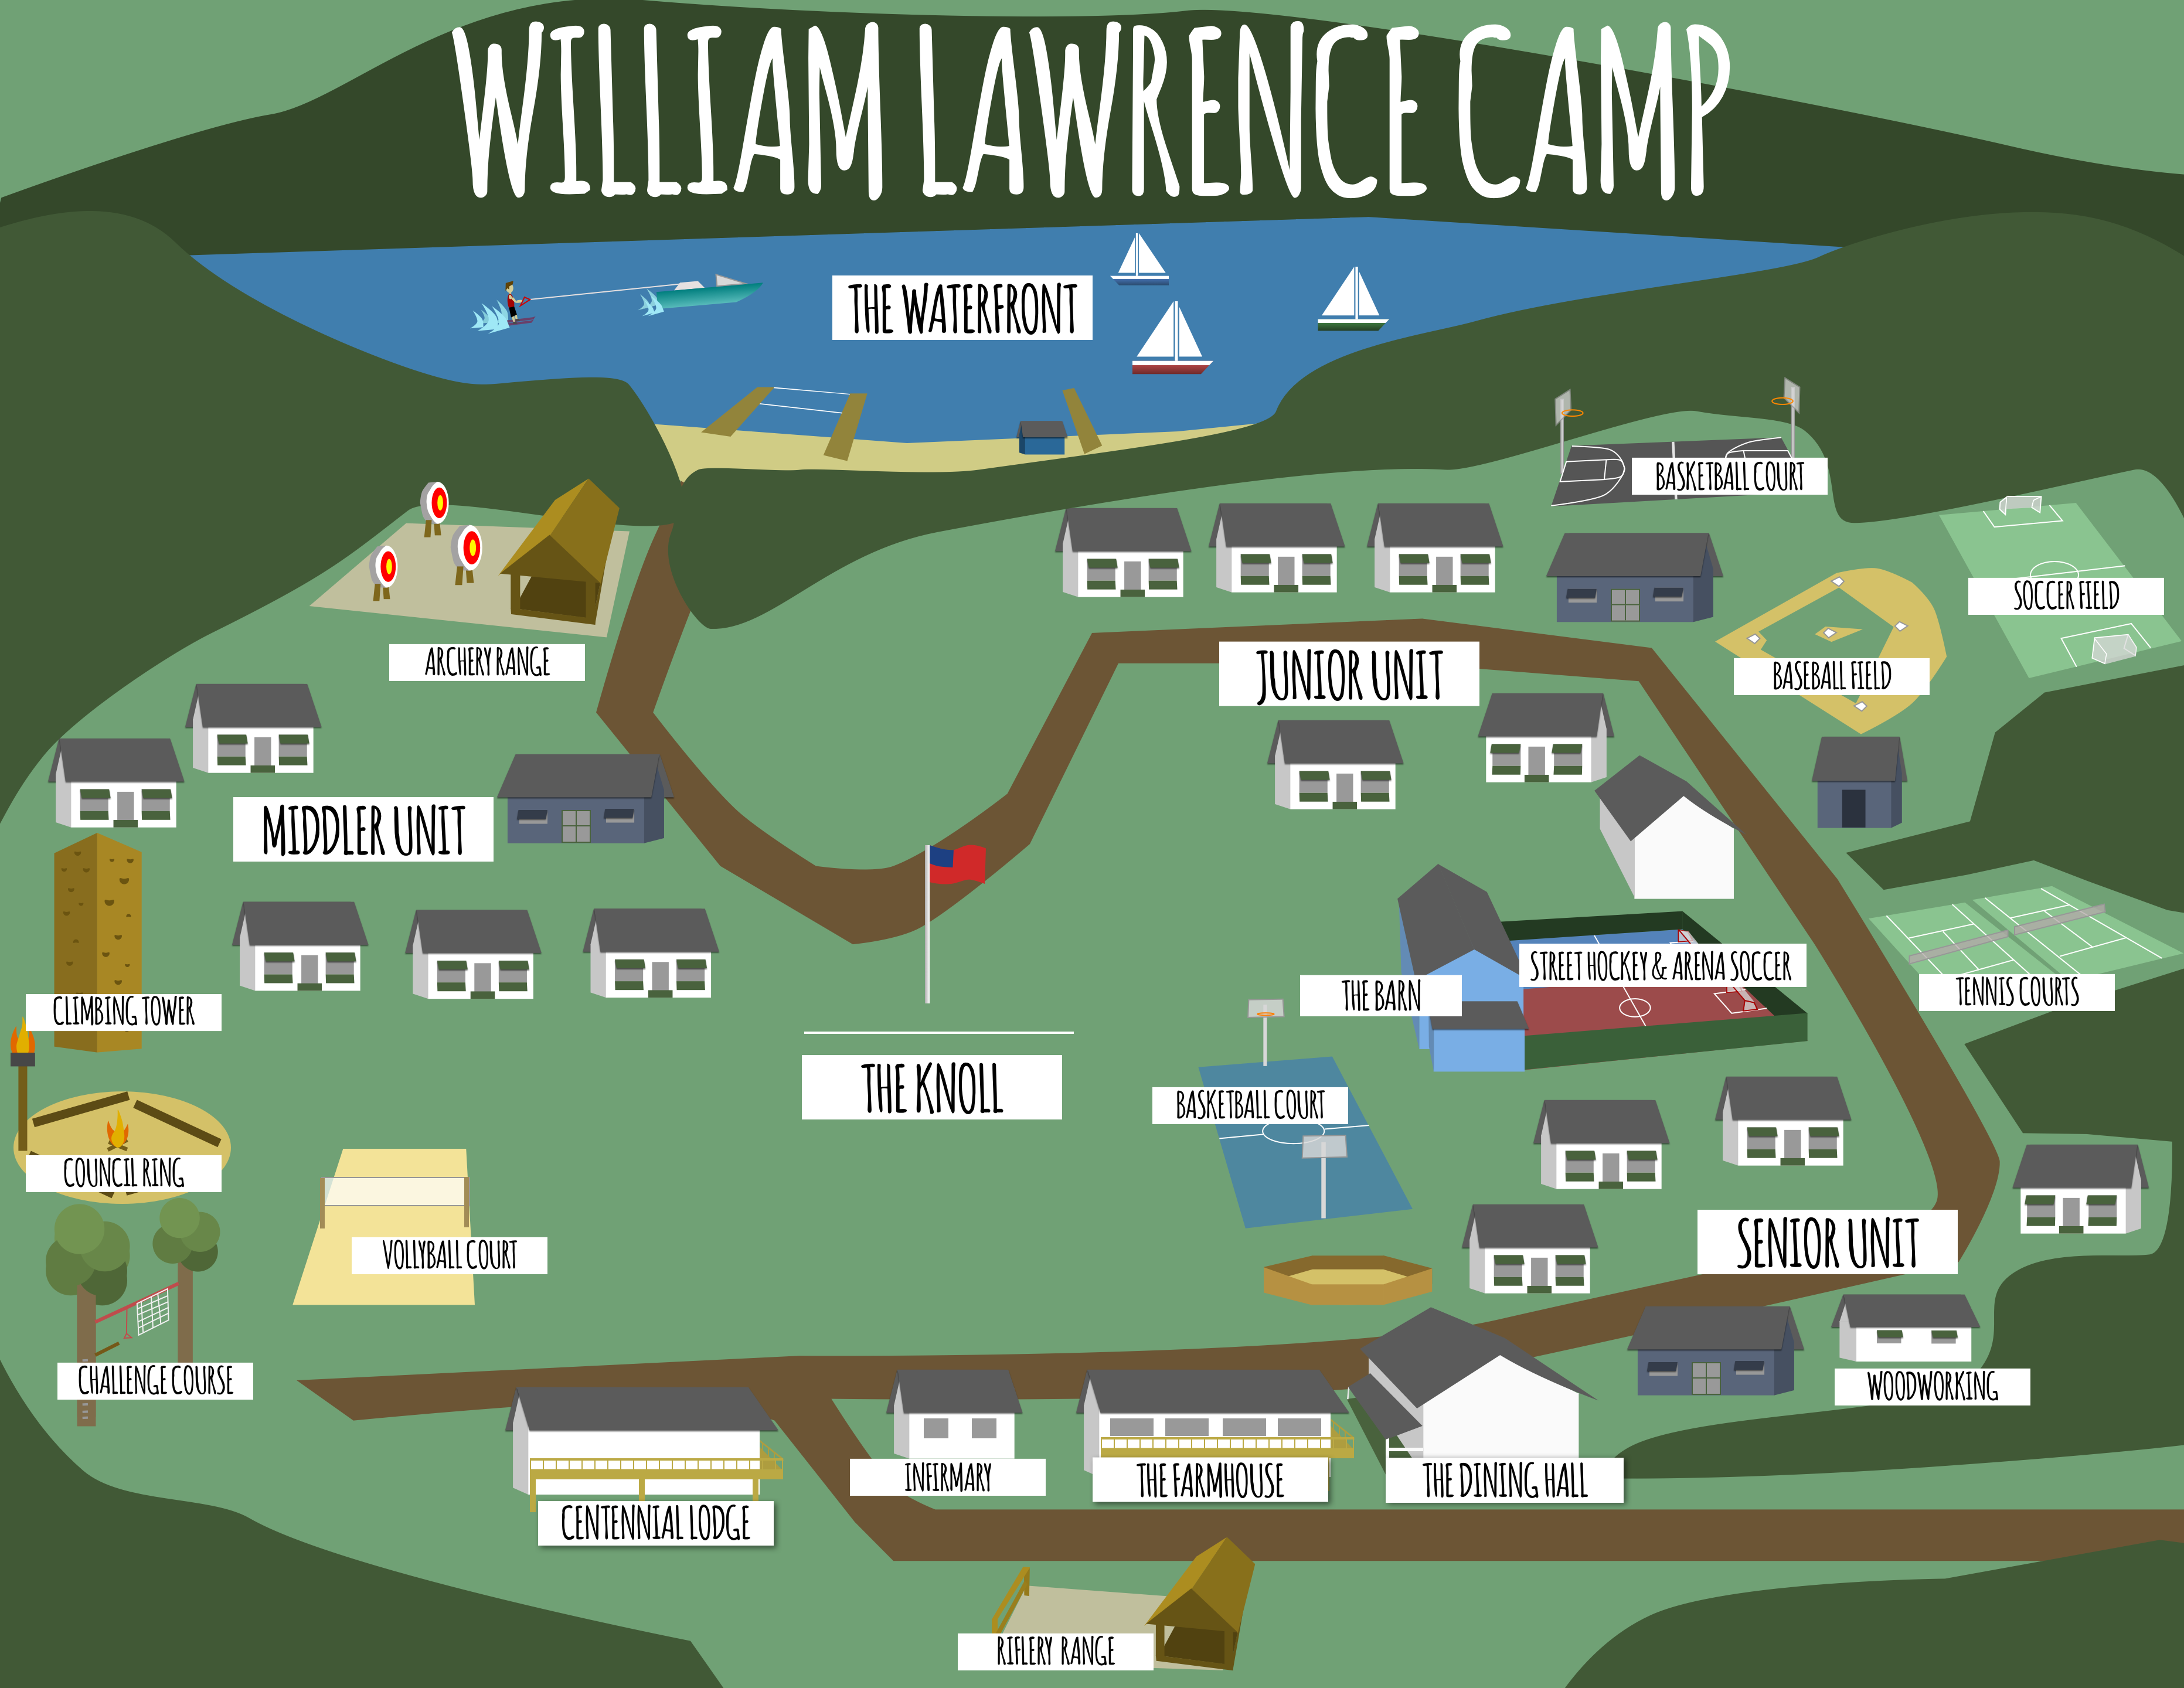 overview map of william lawrence camp